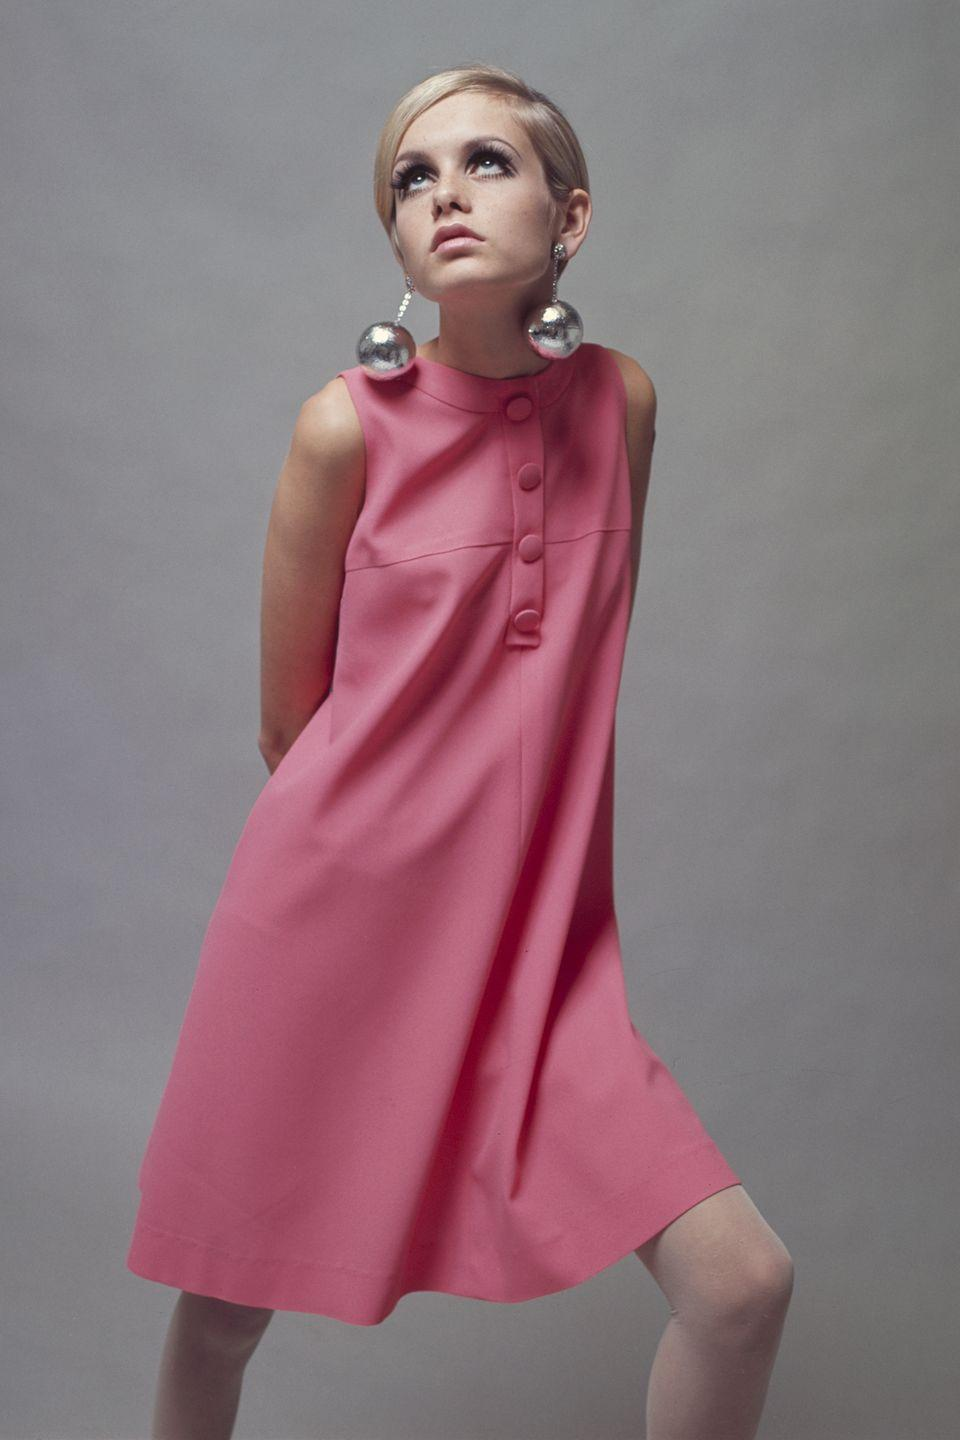 <p>Twiggy knows: When it comes to earrings, the bigger, the better. There's always earlobe reconstructive surgery. </p>